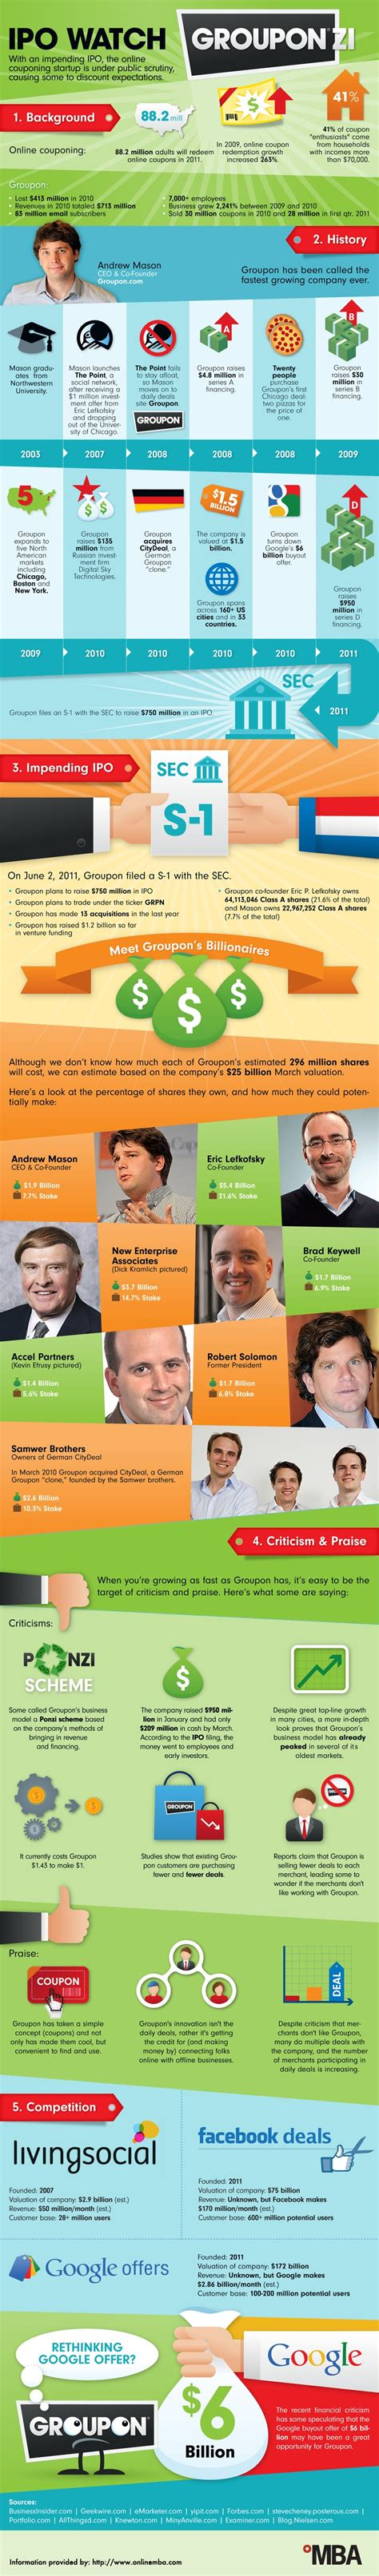 ipo  groupon infographic infographic list